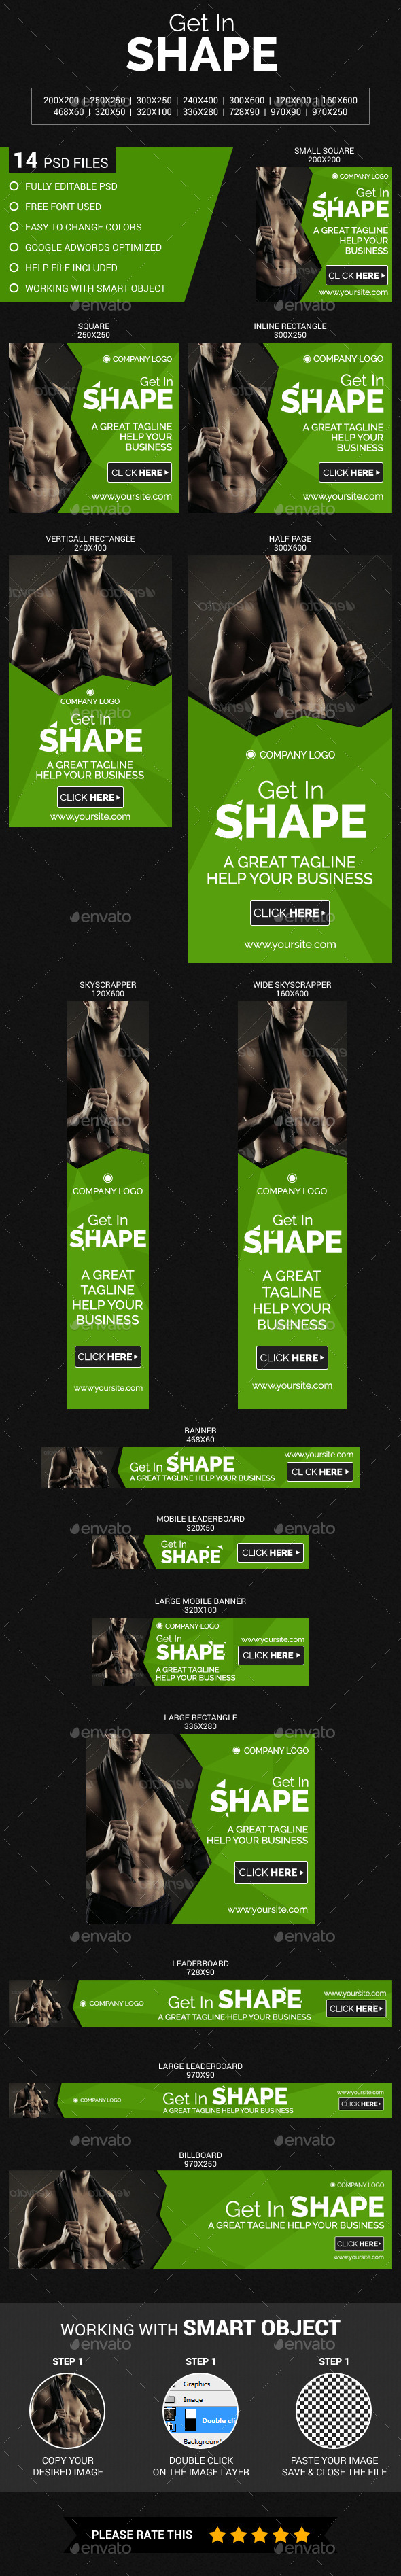 Health, Fitness & GYM - Banners & Ads Web Elements